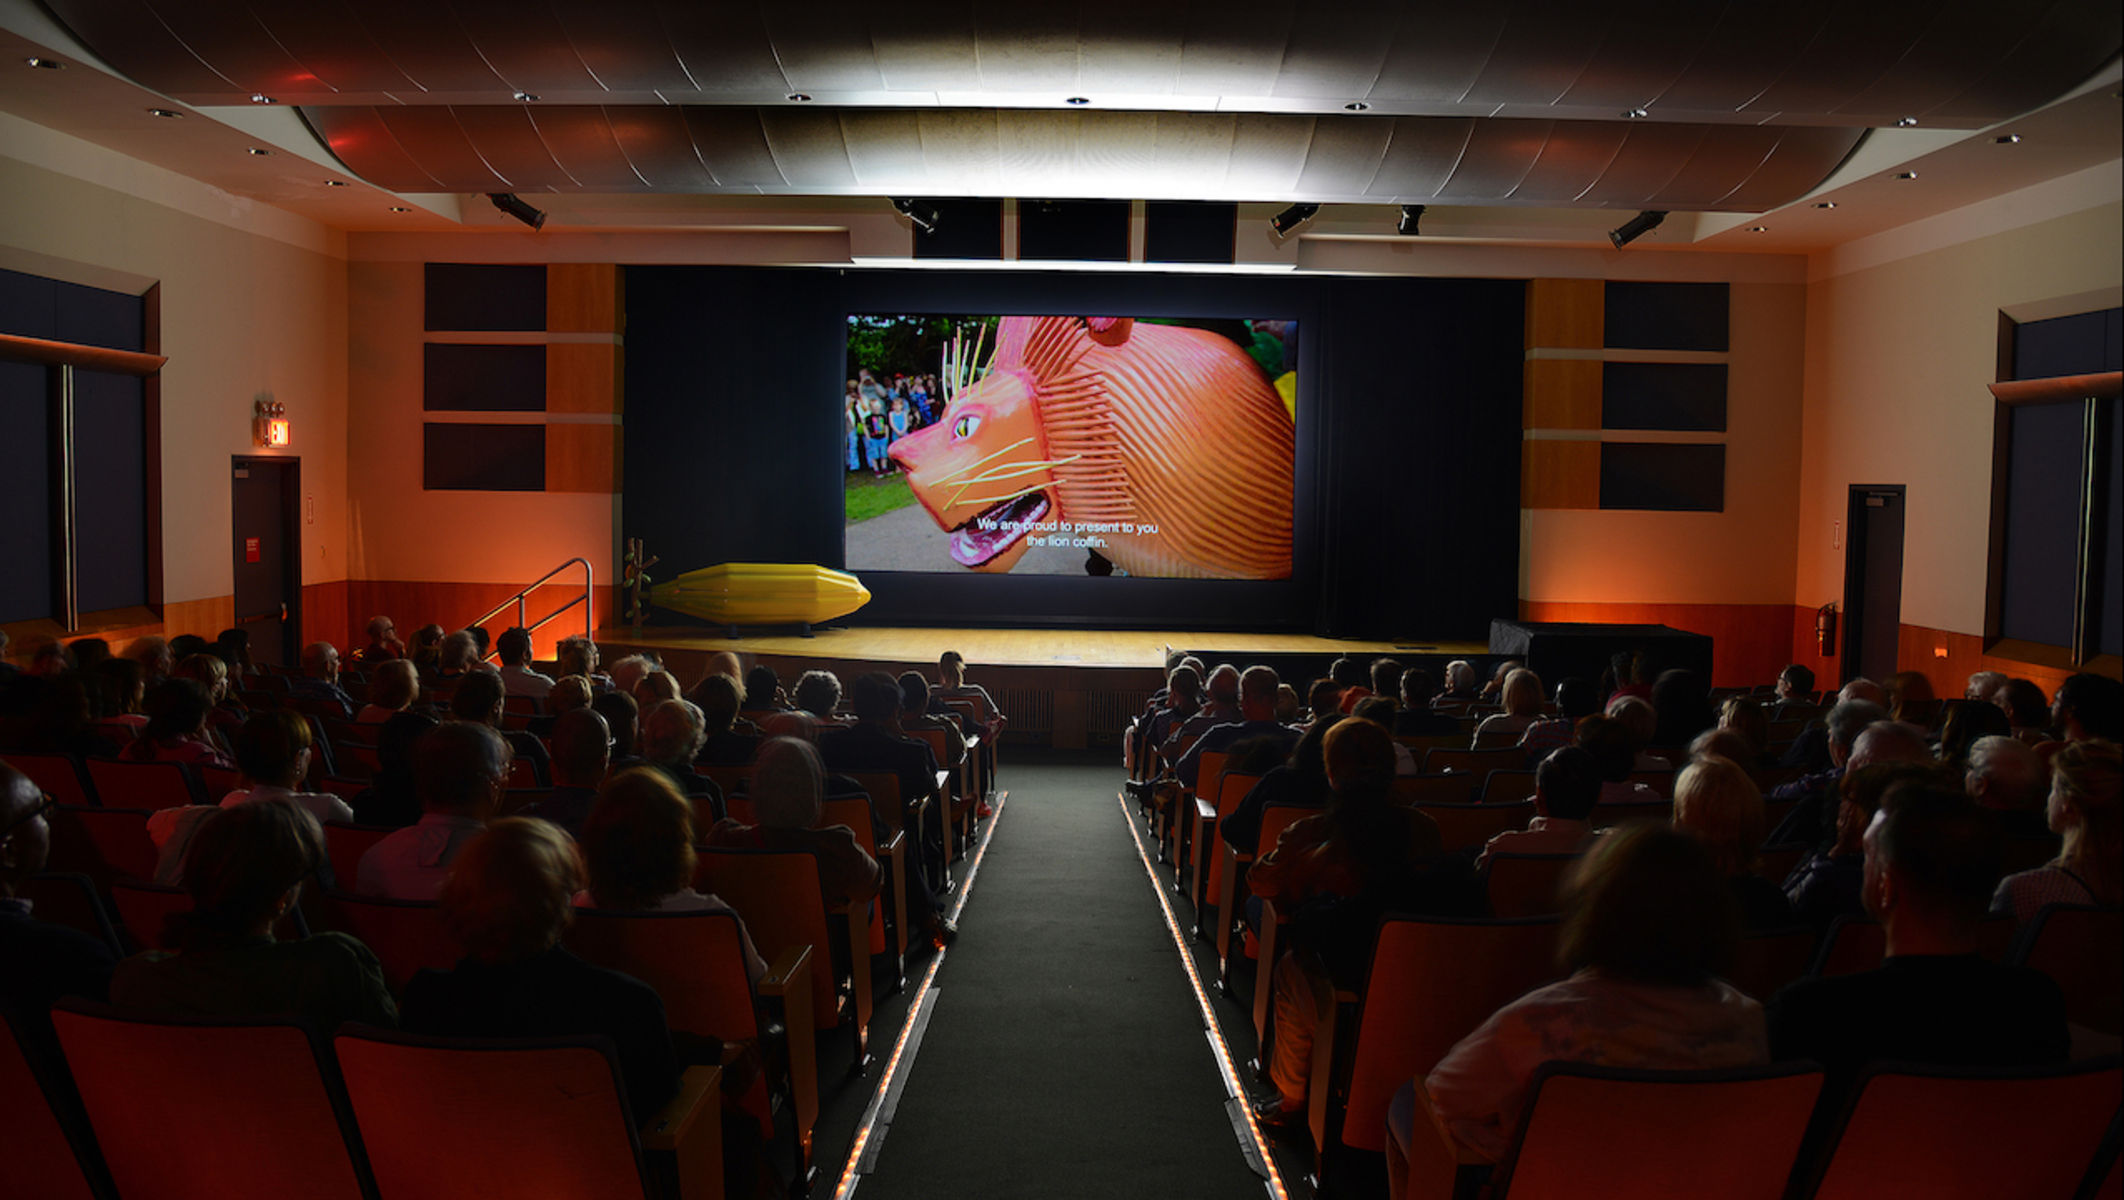 movie theater showing image of lion coffin. On the left of the stage is one of his masterpiece coffins from the Museum's anthropology collections.